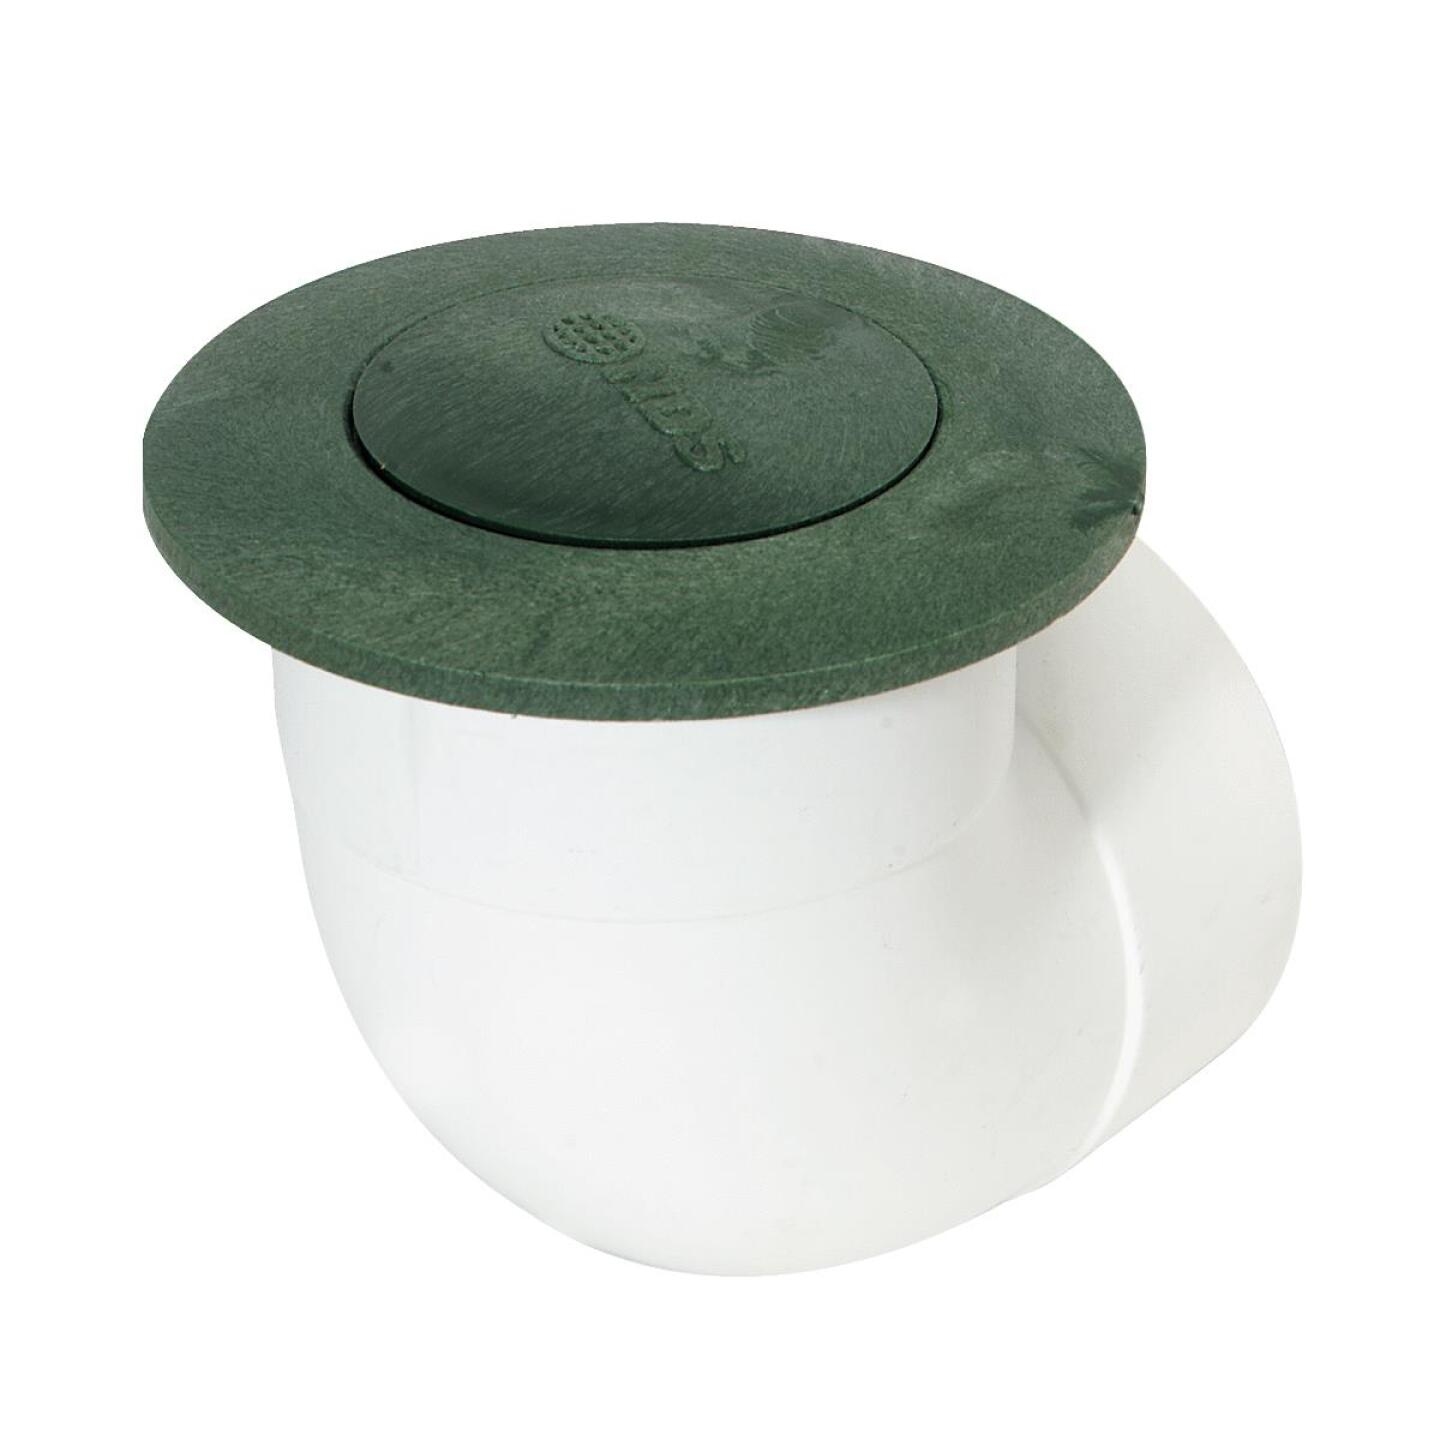 NDS 4 In. Pop-up, Sewer & Drain Plastic Drainage Emitter Image 1